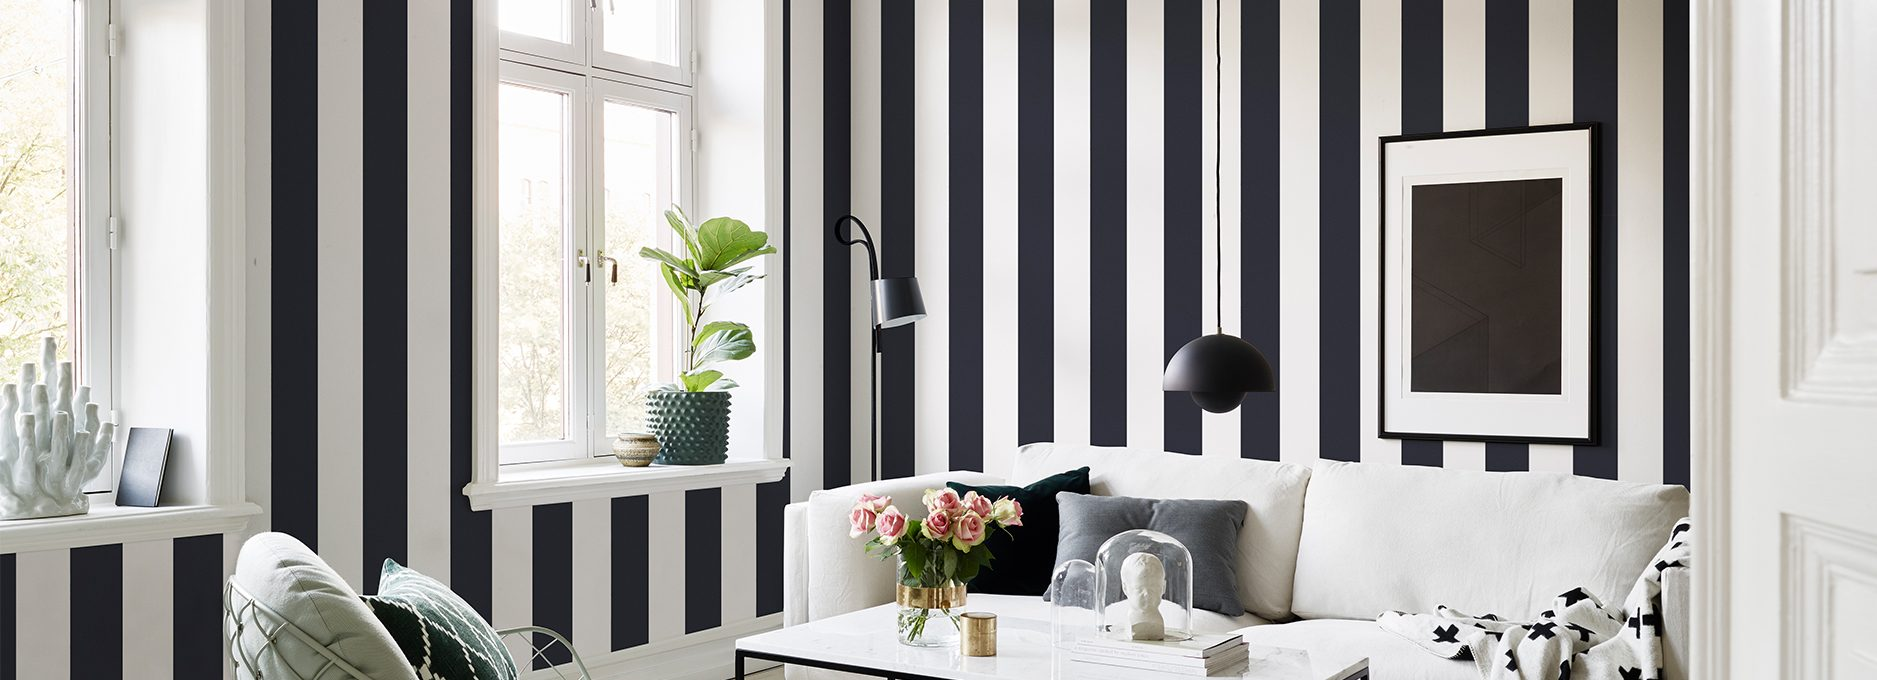 WALLPAPER TRENDS: THE MOST BEAUTIFUL MODELS